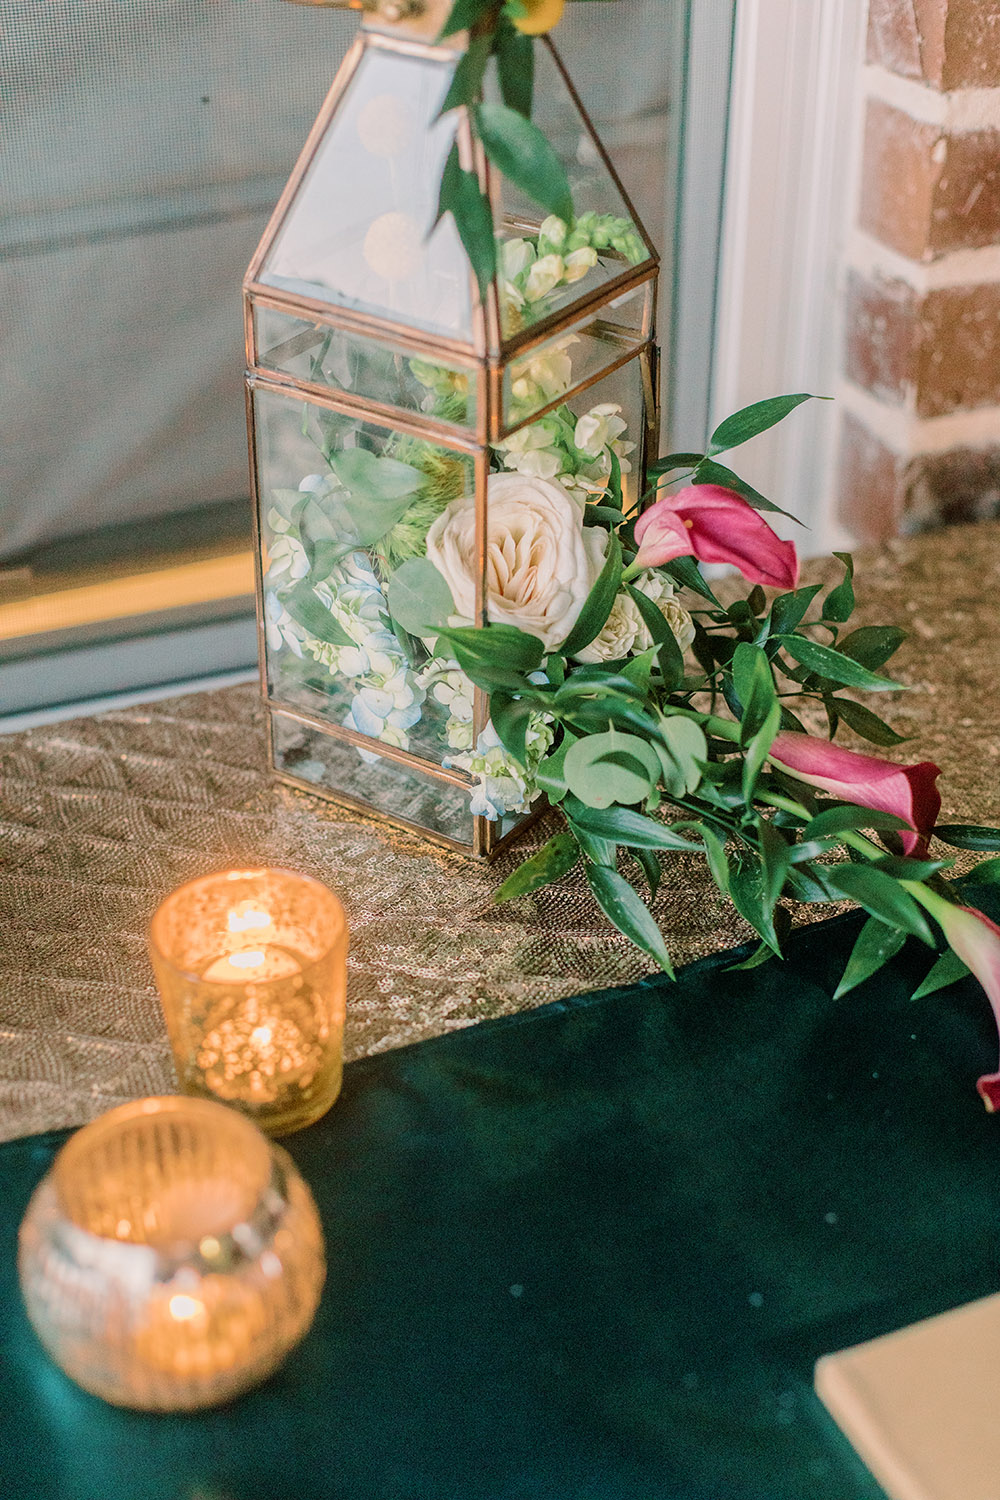 Lantern filled with fresh flowers. Photo: Ashley Kristen Photography